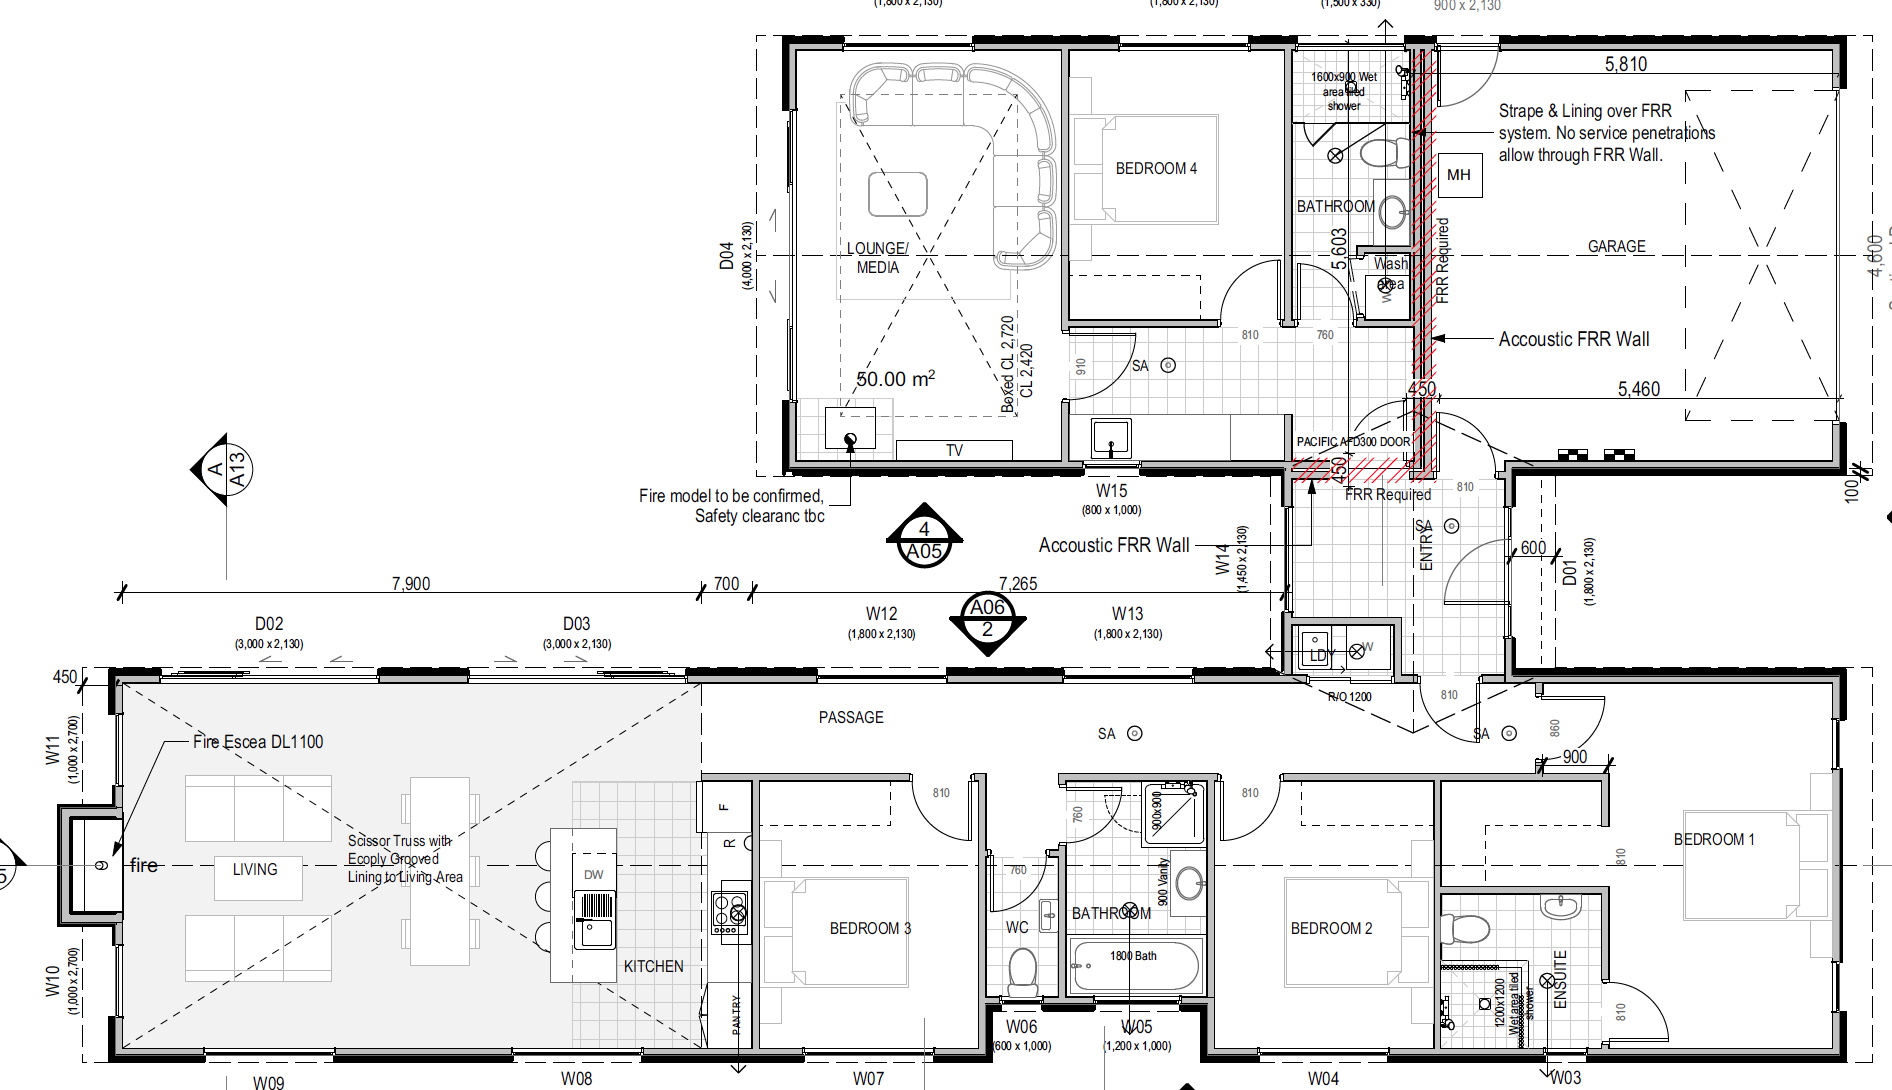 Lot 13 The Cairns Riverside Lake Tekapoproperty floorplan image